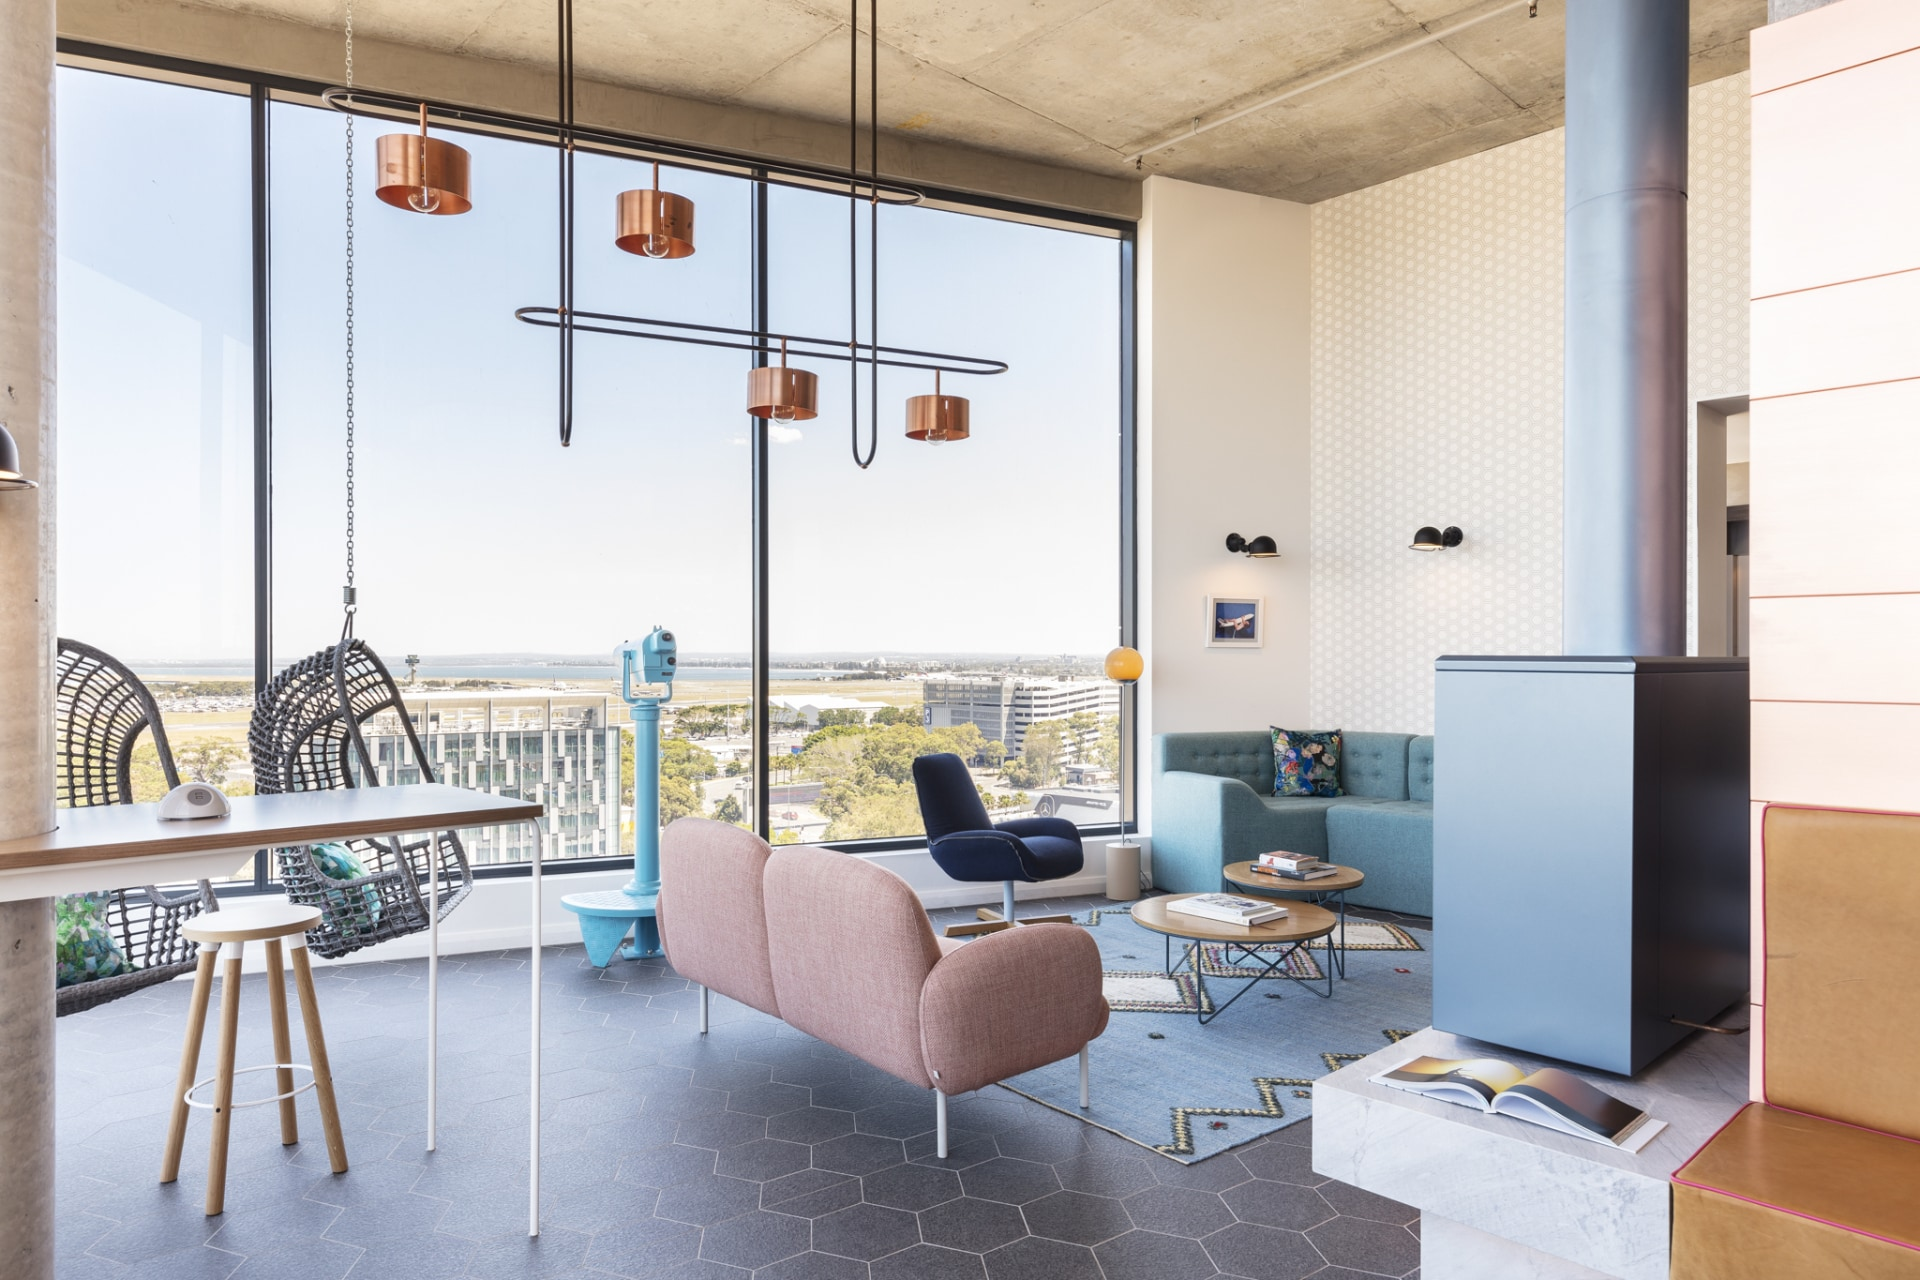 Sydney got a brand new airport hotel and it's not like the others